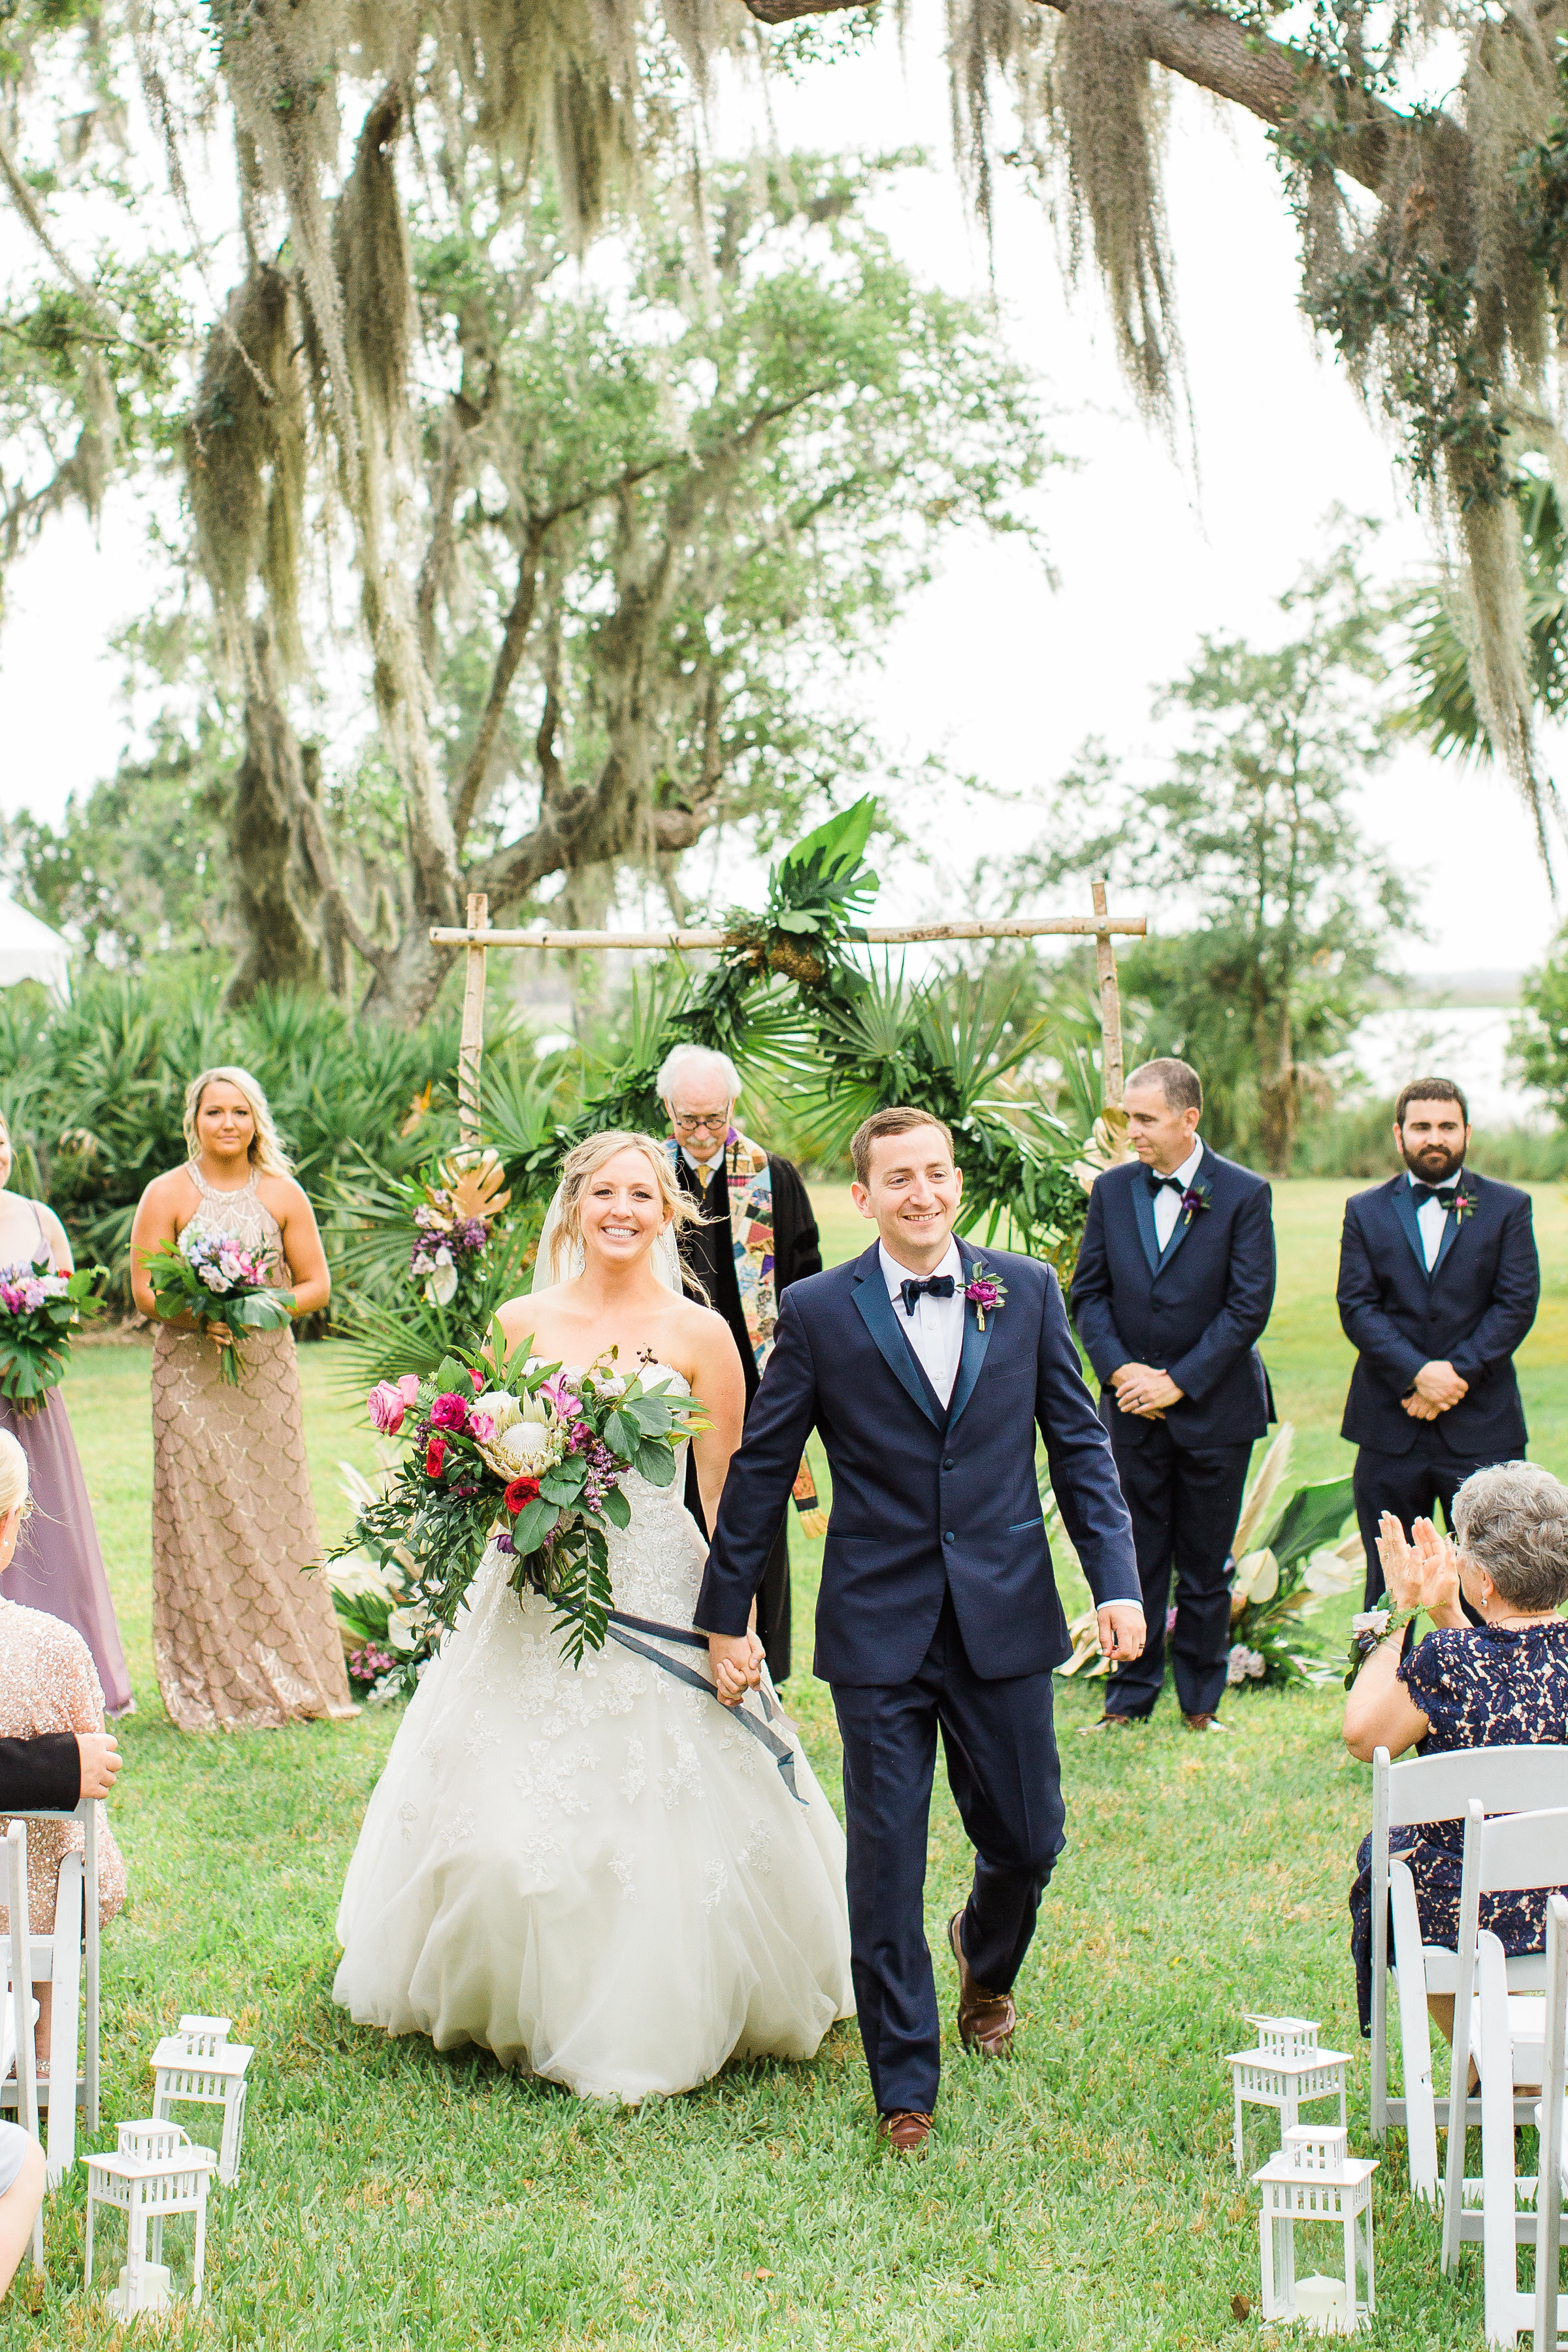 savannah-bridal-shop-i-and-b-couple-gretchen-and-alex-fun-and-unique-tropical-wedding-at-captains-bluff-st-simons-island-wedding-marianne-lucille-photography-25.jpg